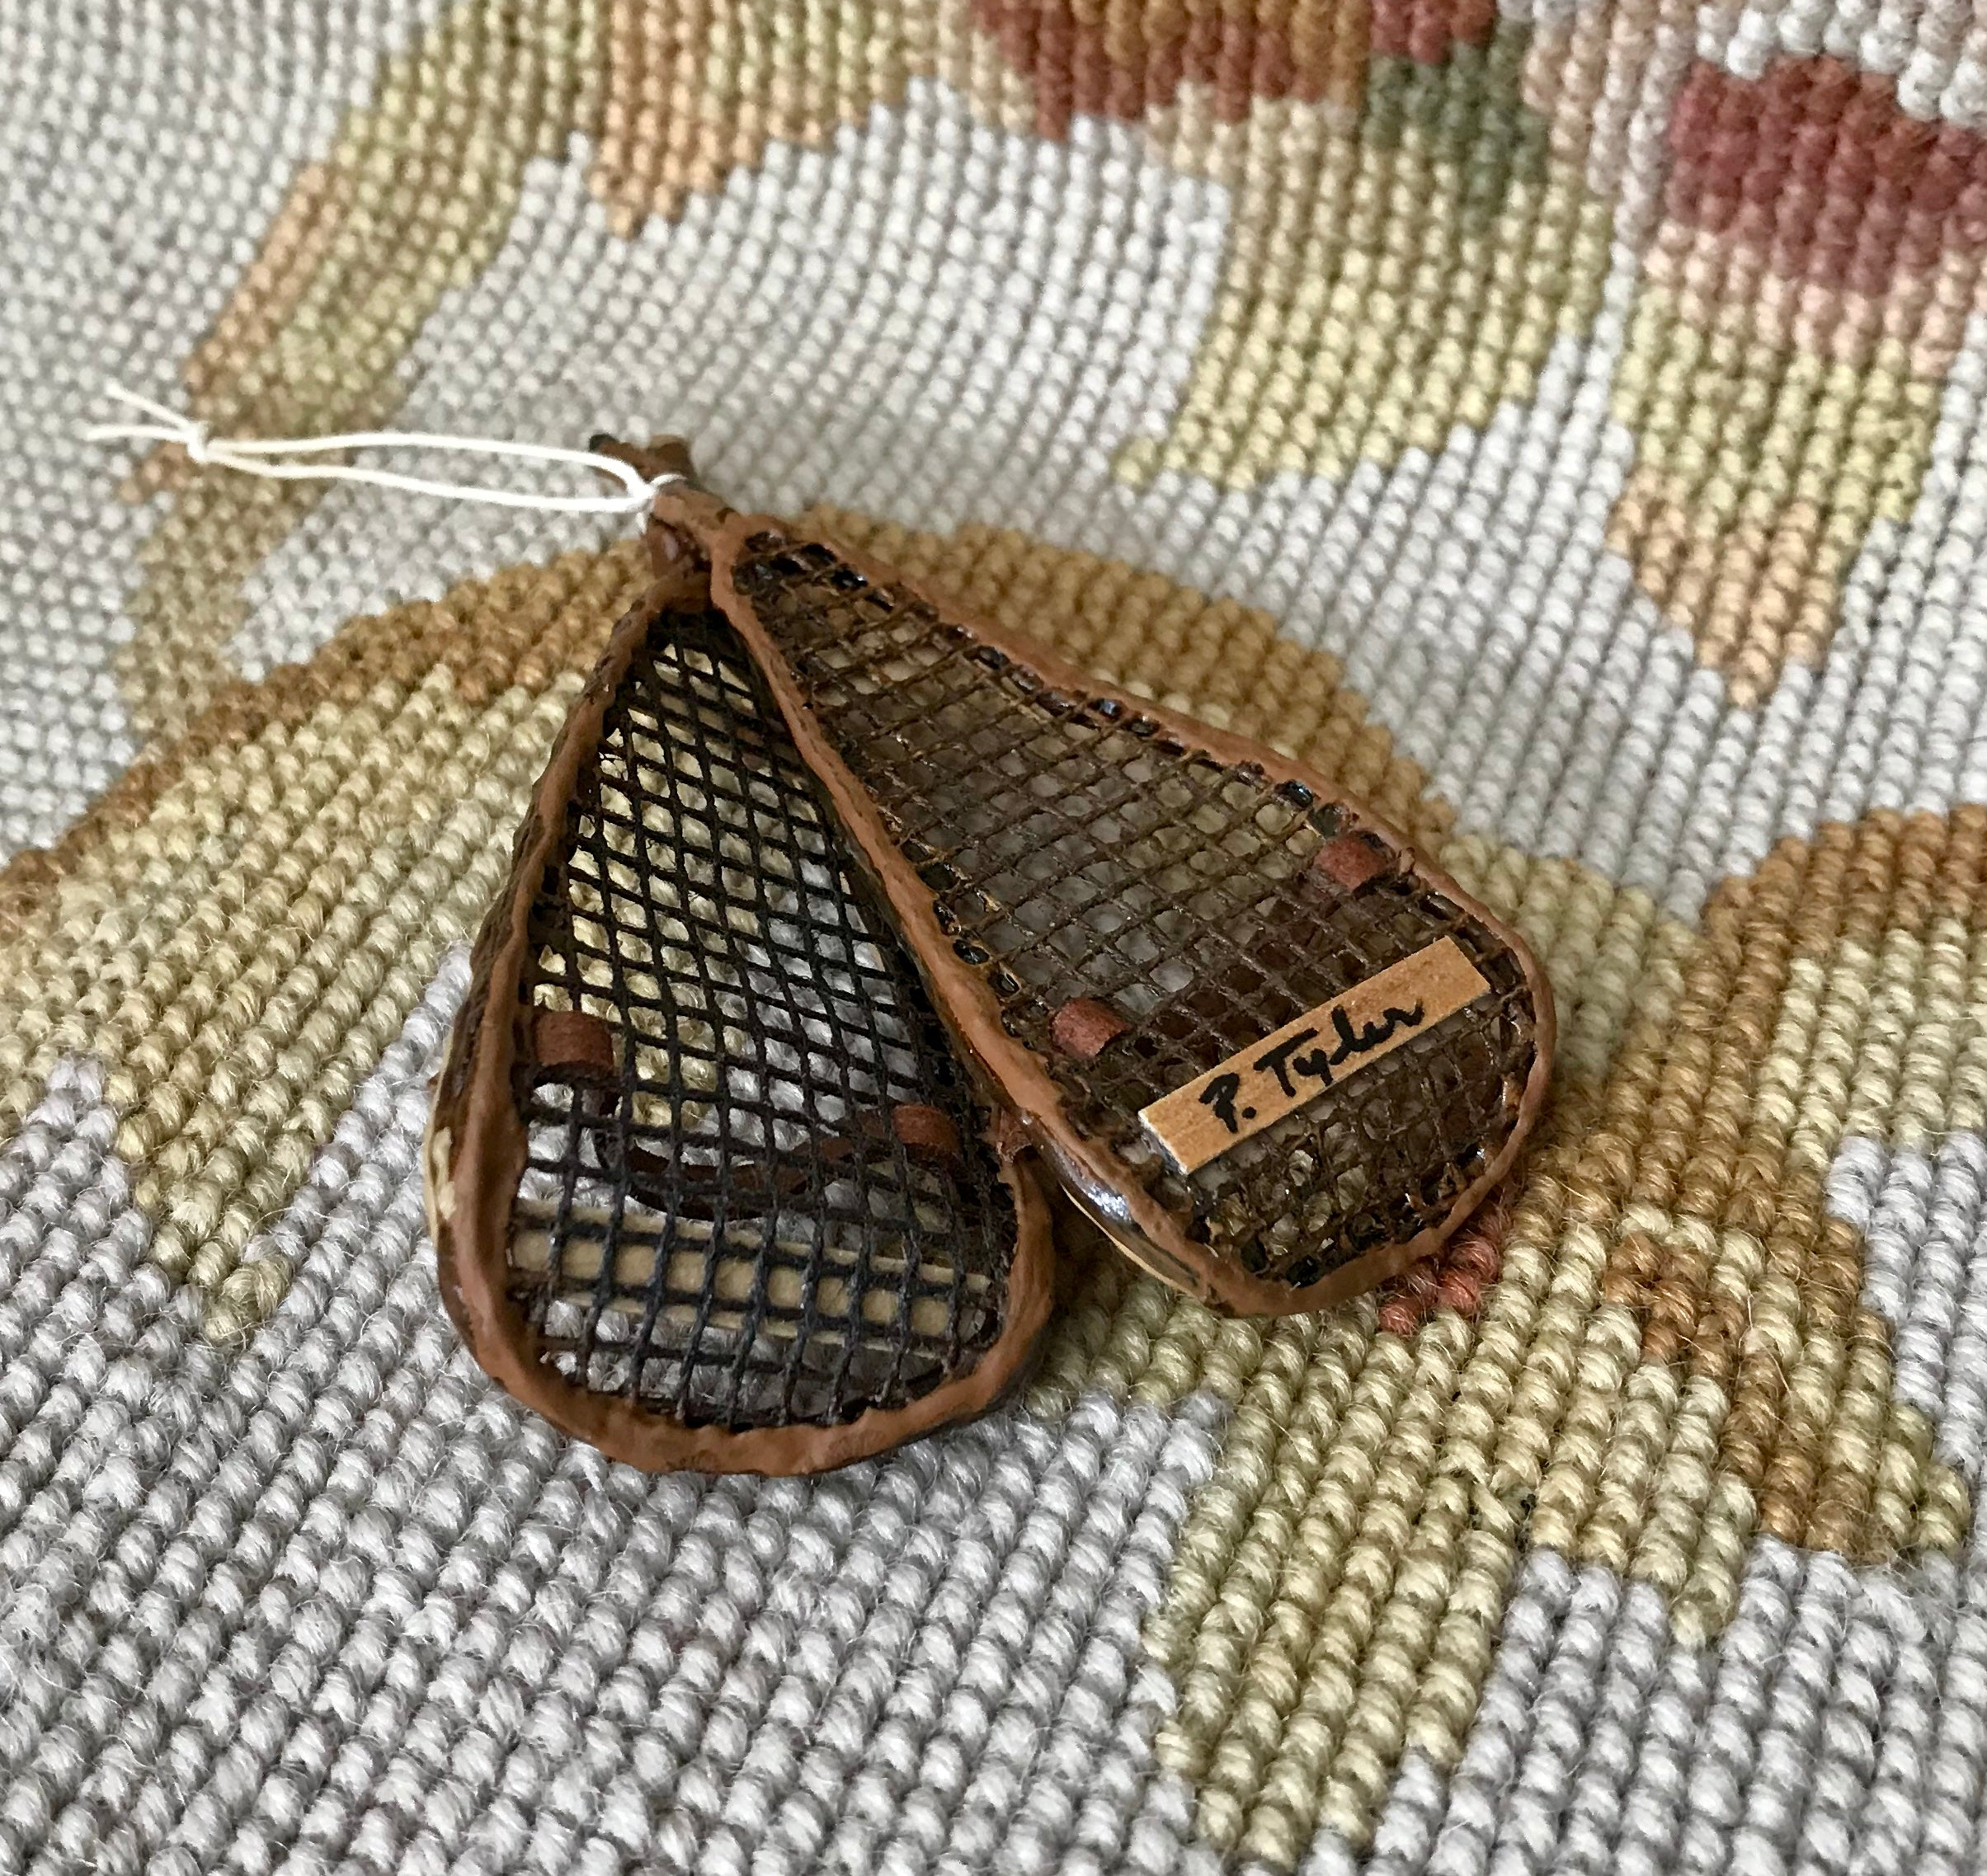 Snow Shoes 1:12 Dollhouse Miniature